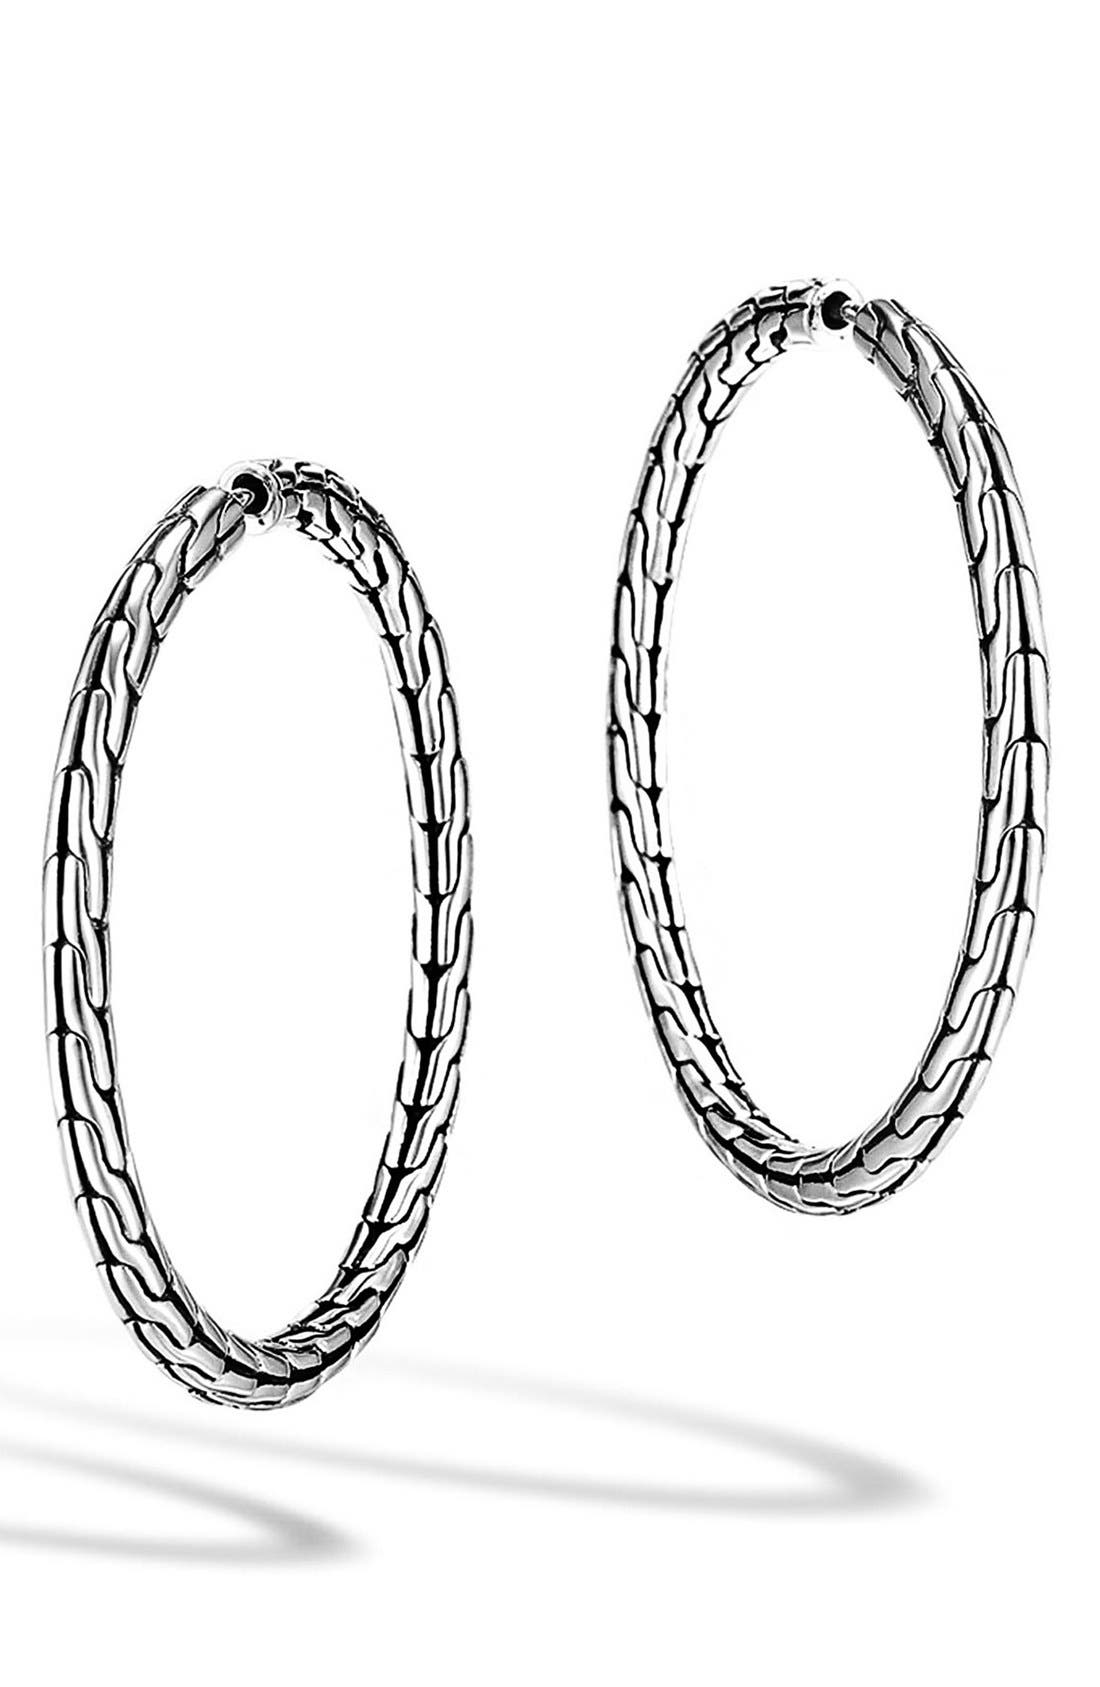 Main Image - John Hardy 'Classic Chain' Medium Hoop Earrings